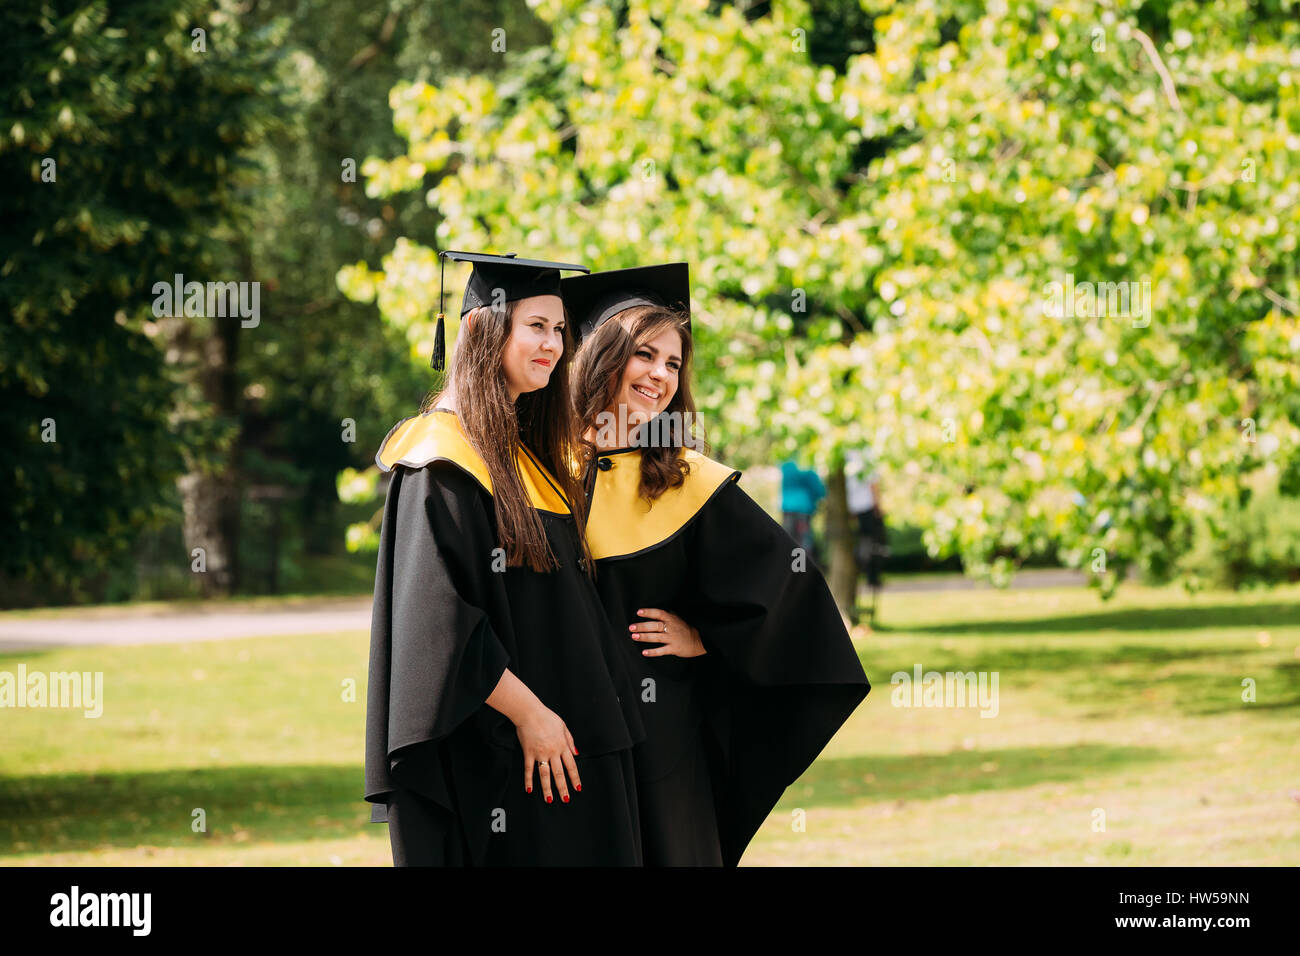 Riga, Latvia - July 1, 2016: Two young women graduates of the University of Latvia dressed in gown graduates and - Stock Image